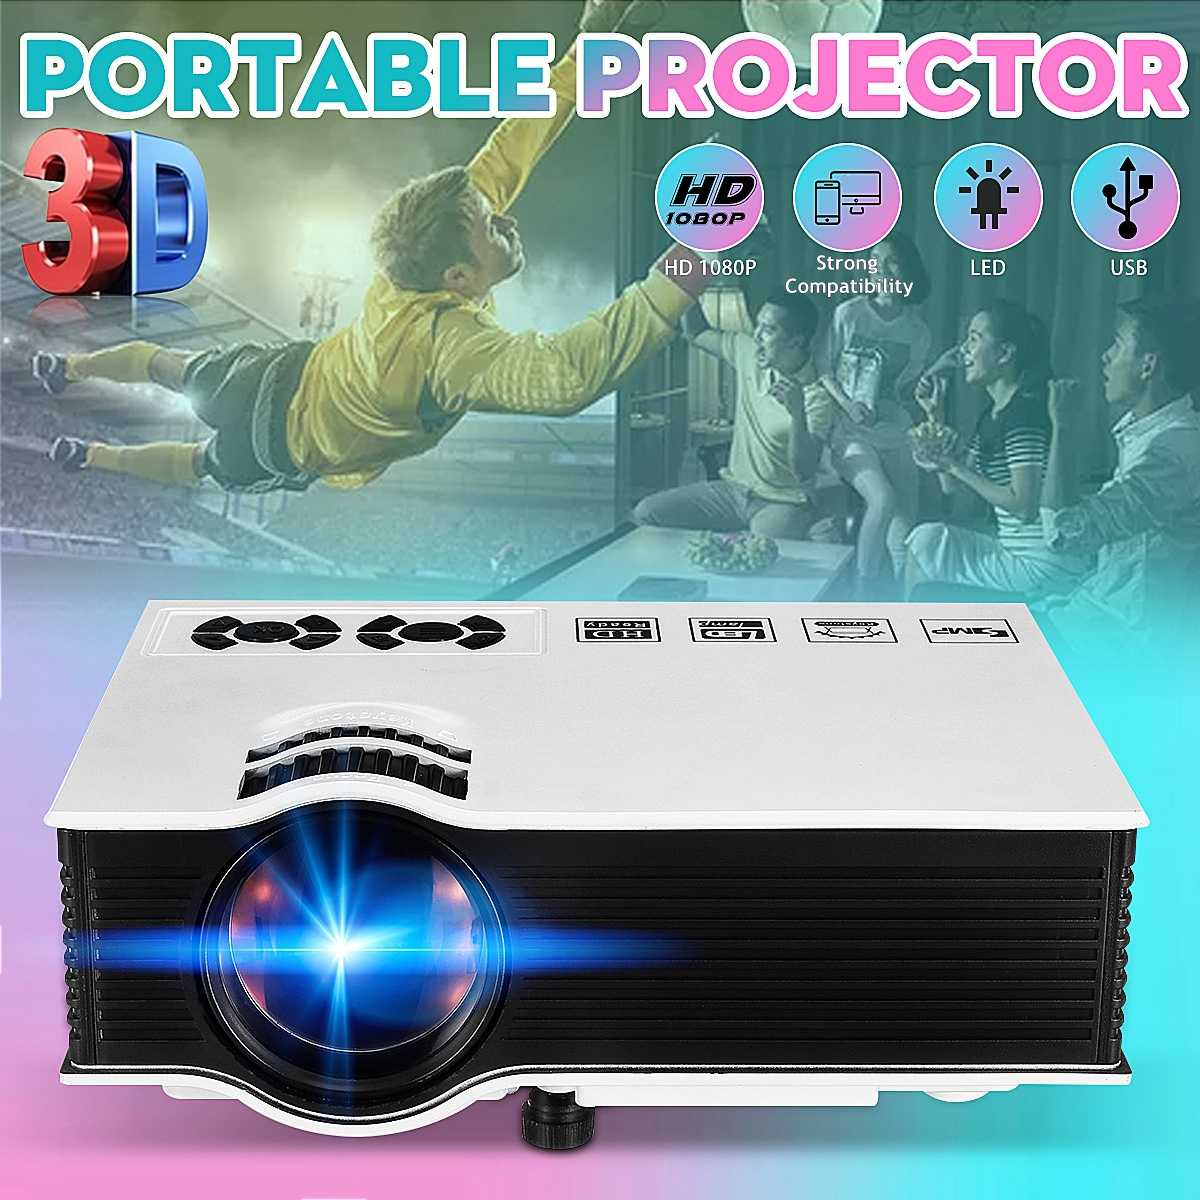 KSD-398 projector LED Home Multimedia Player Support 720P and 1080PKSD-398 projector LED Home Multimedia Player Support 720P and 1080P